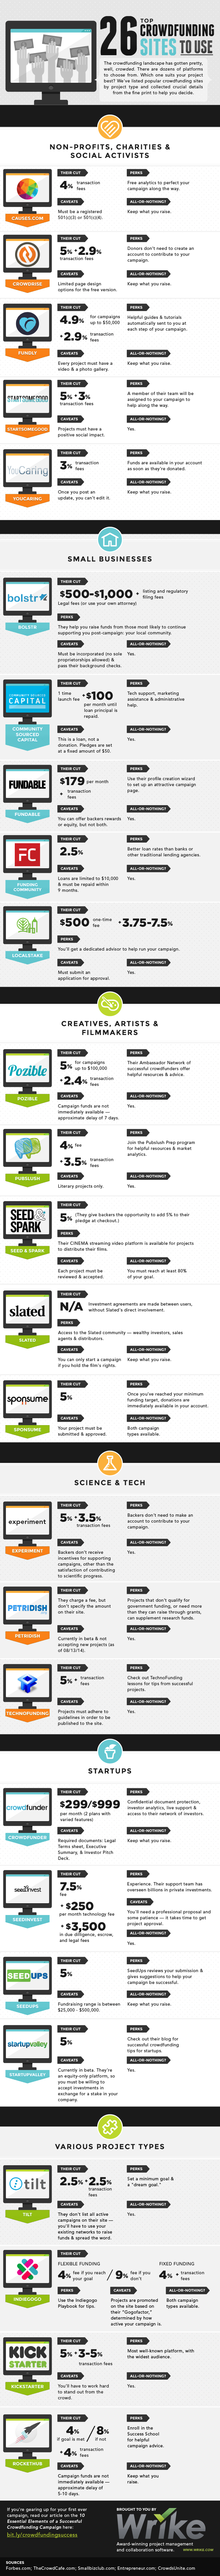 26 Crowdfunding Sites to Use - #Infographic